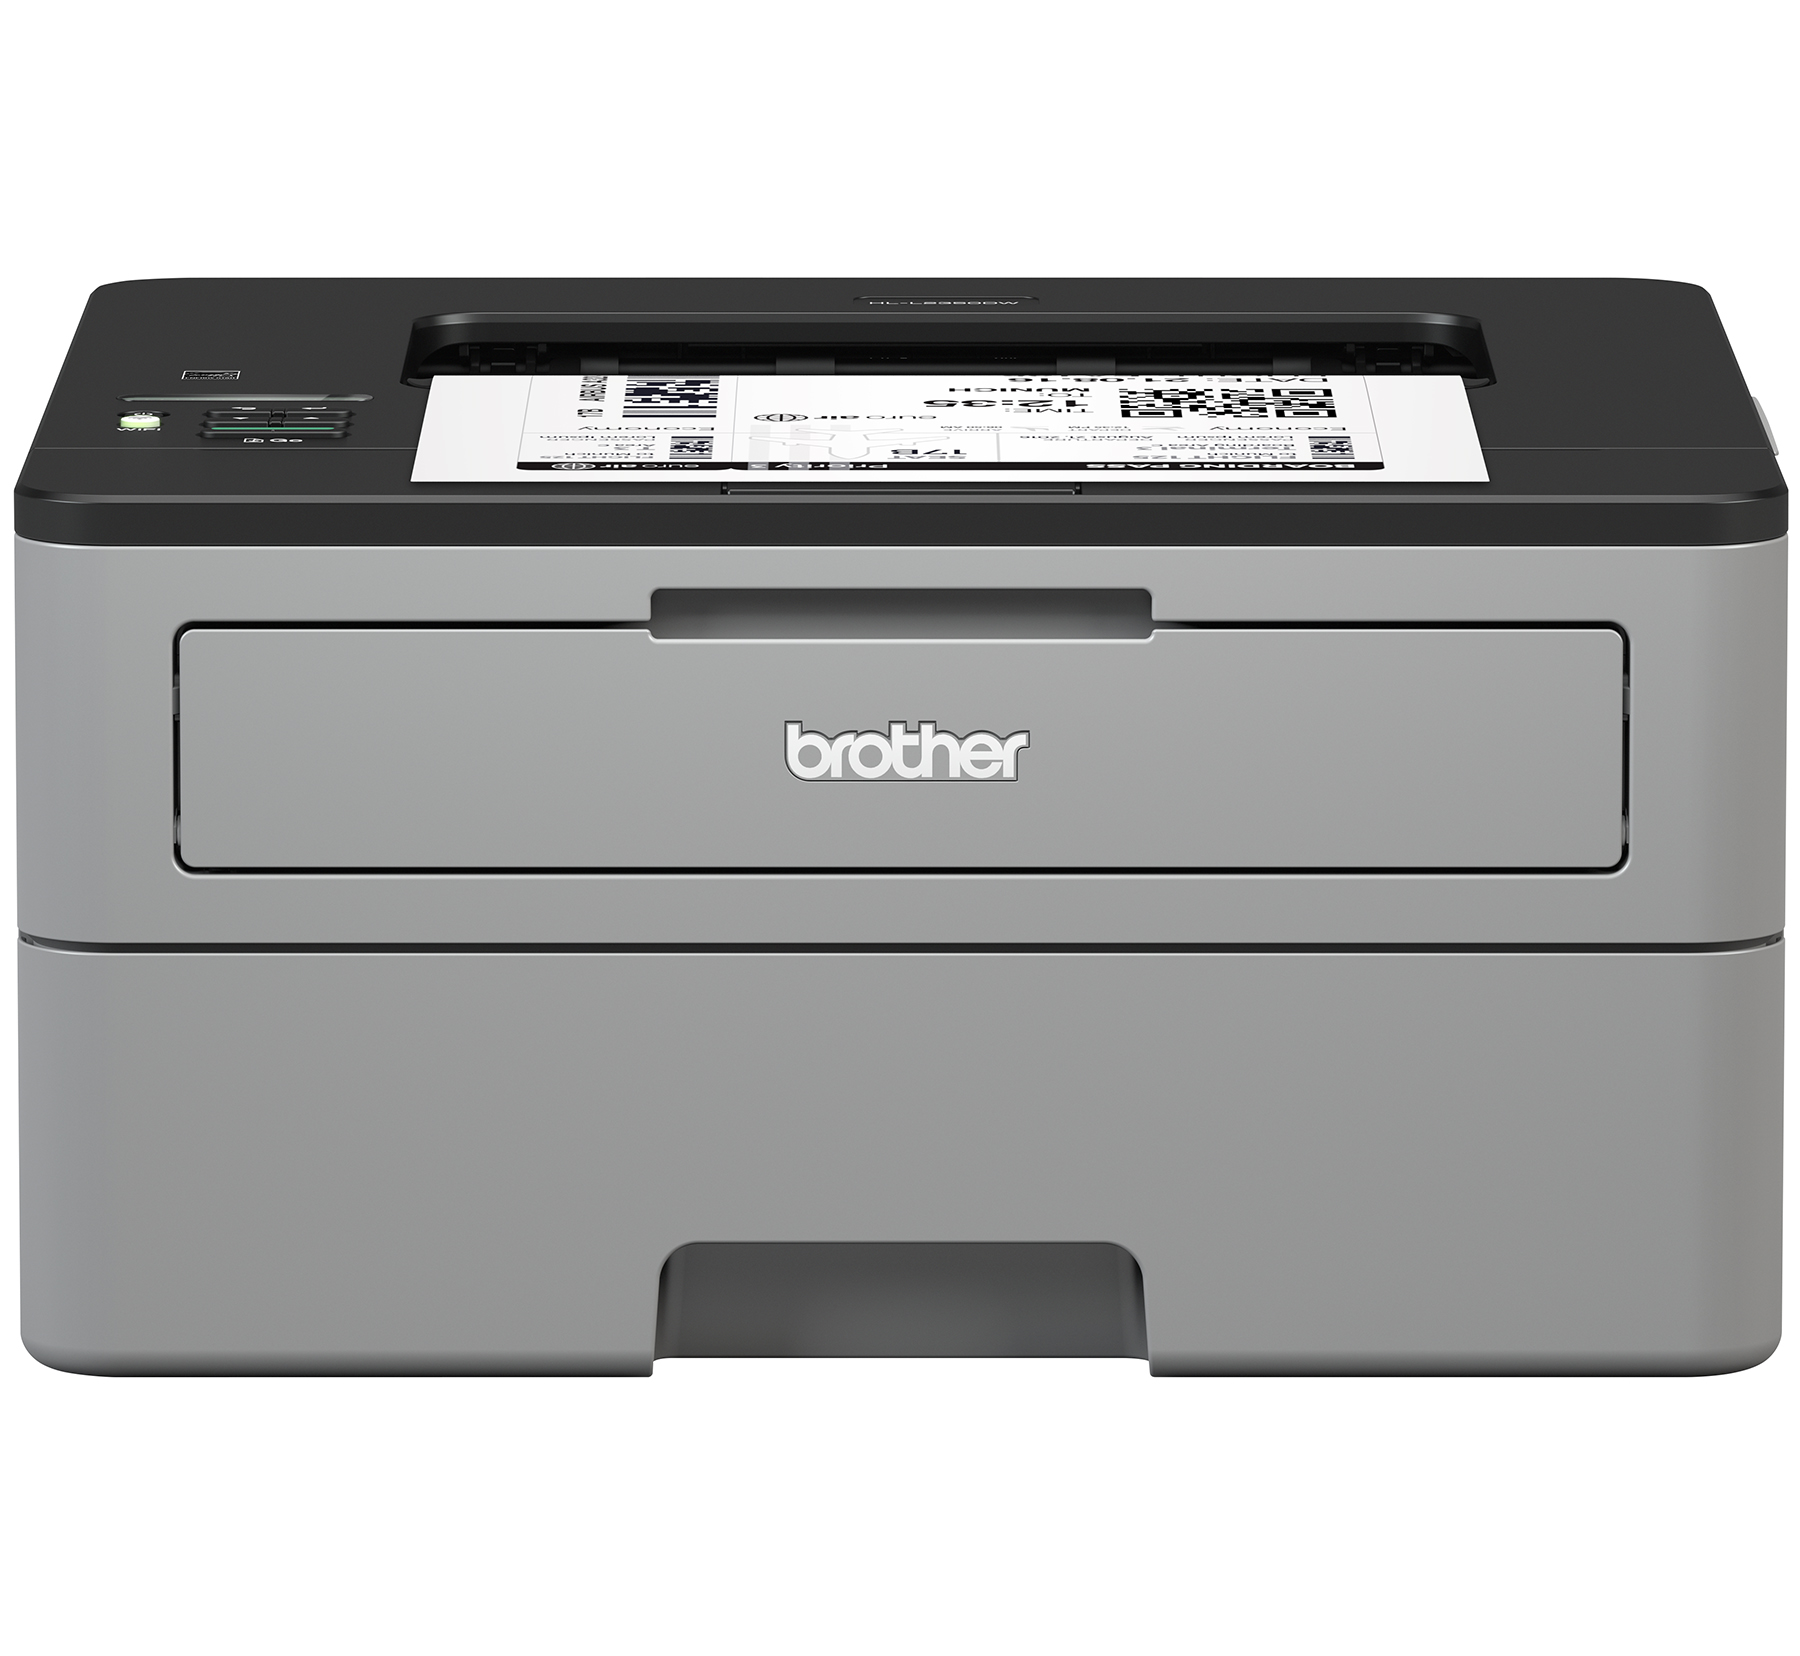 Brother HL-5370DW Printer Driver for Windows